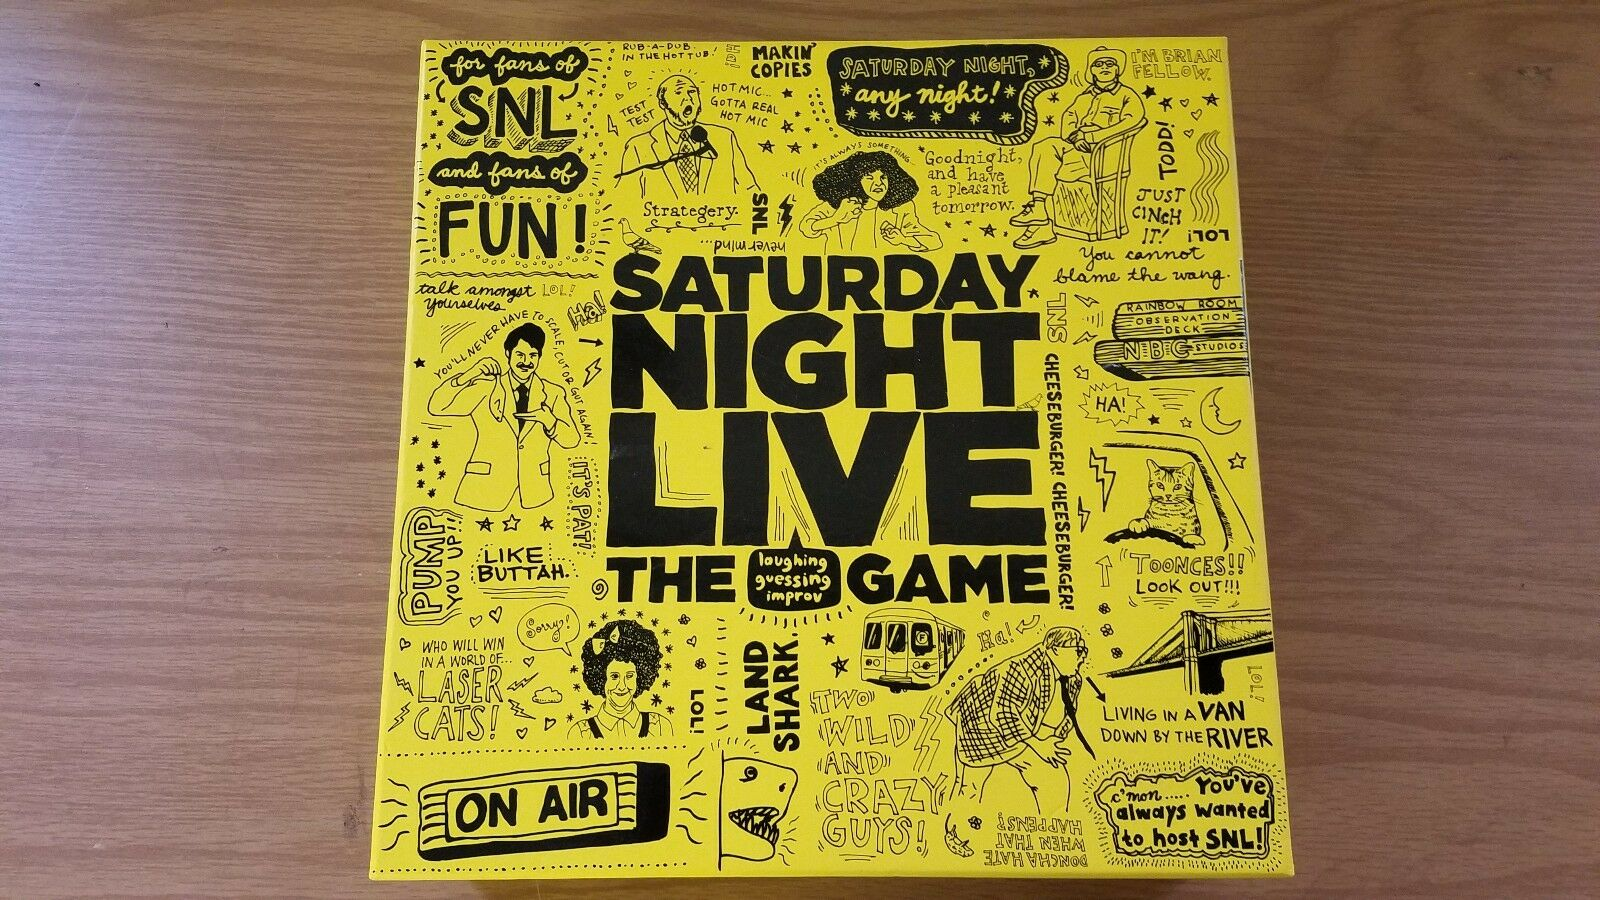 2010 Saturday Night Live The Game by Discovery Bay Games COMPLETE